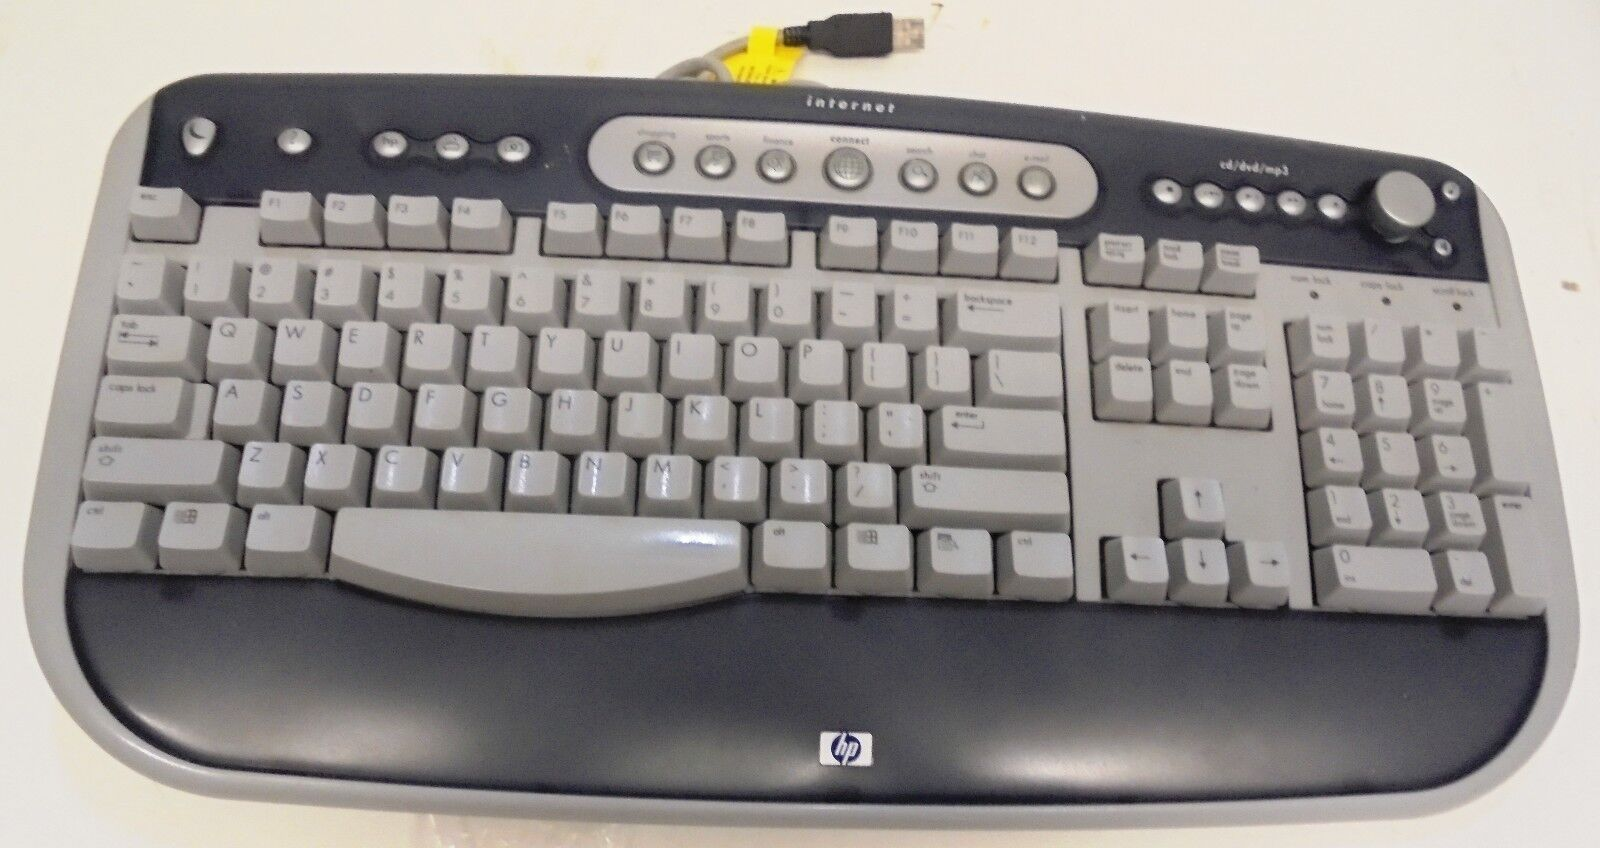 HP KEYBOARD 5308 WINDOWS 7 DRIVERS DOWNLOAD